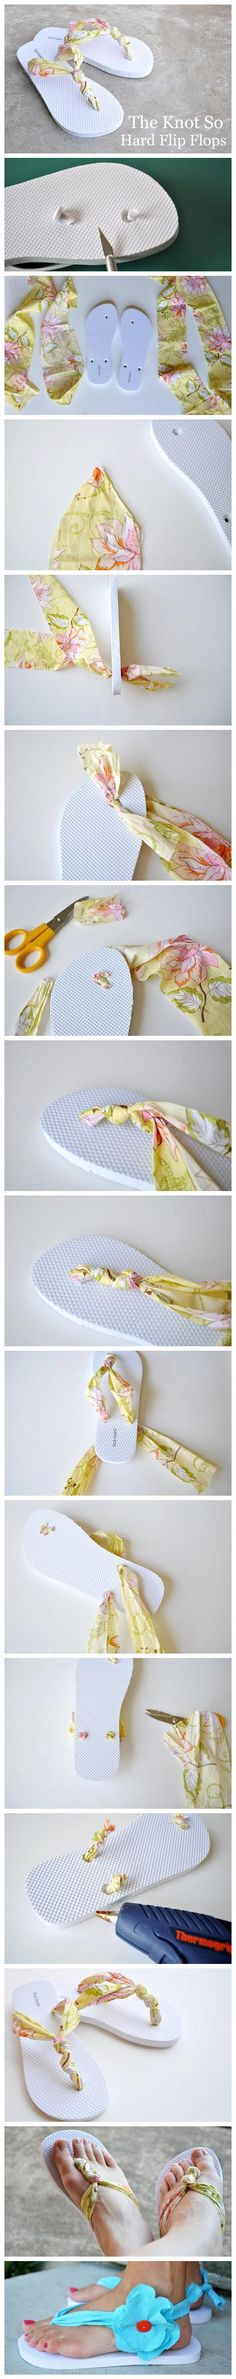 Change out flip flop straps for fabric. I get the feeling this is going to save my feet next summer!